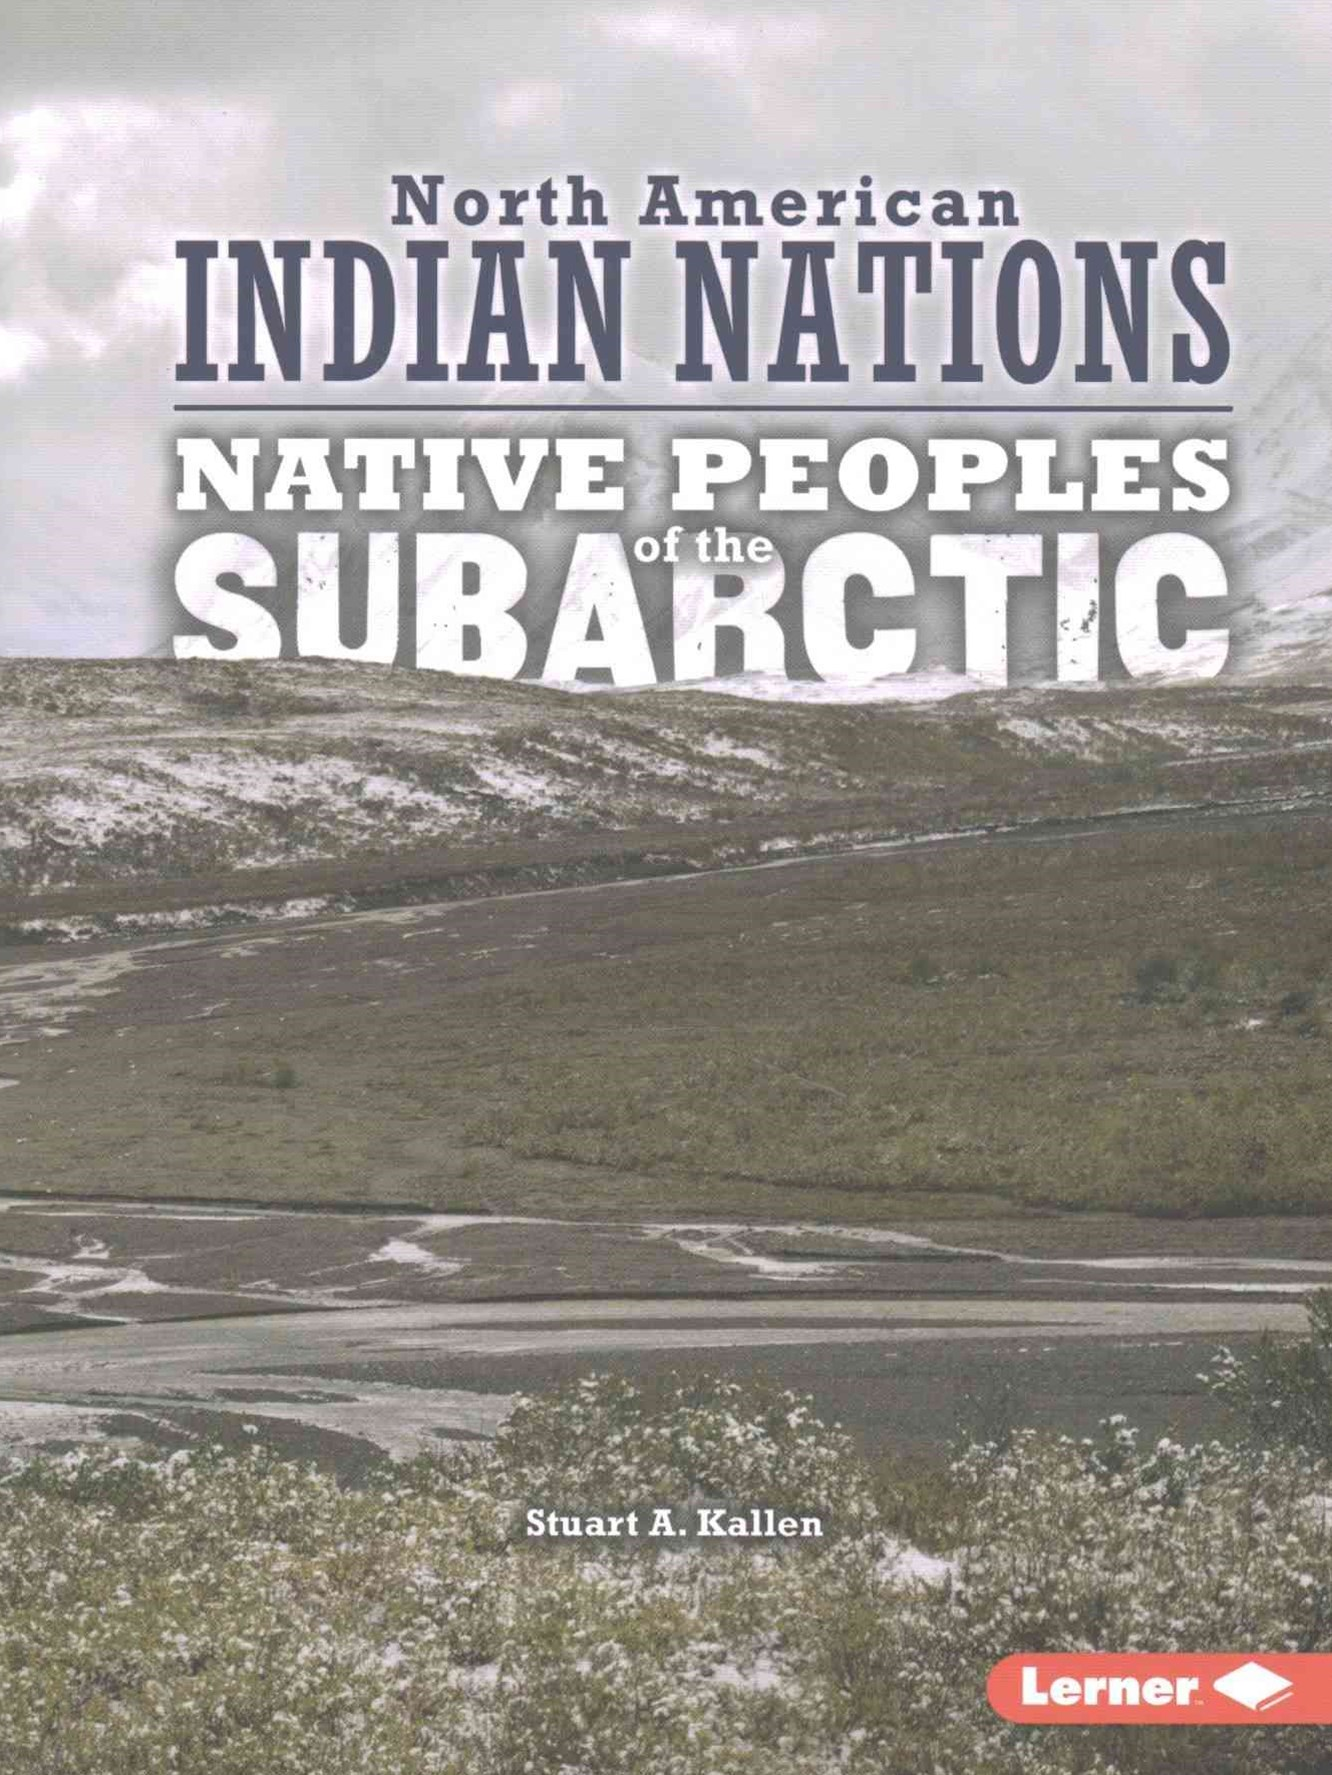 Sub Arctic - Native Peoples - North American Indian Nations